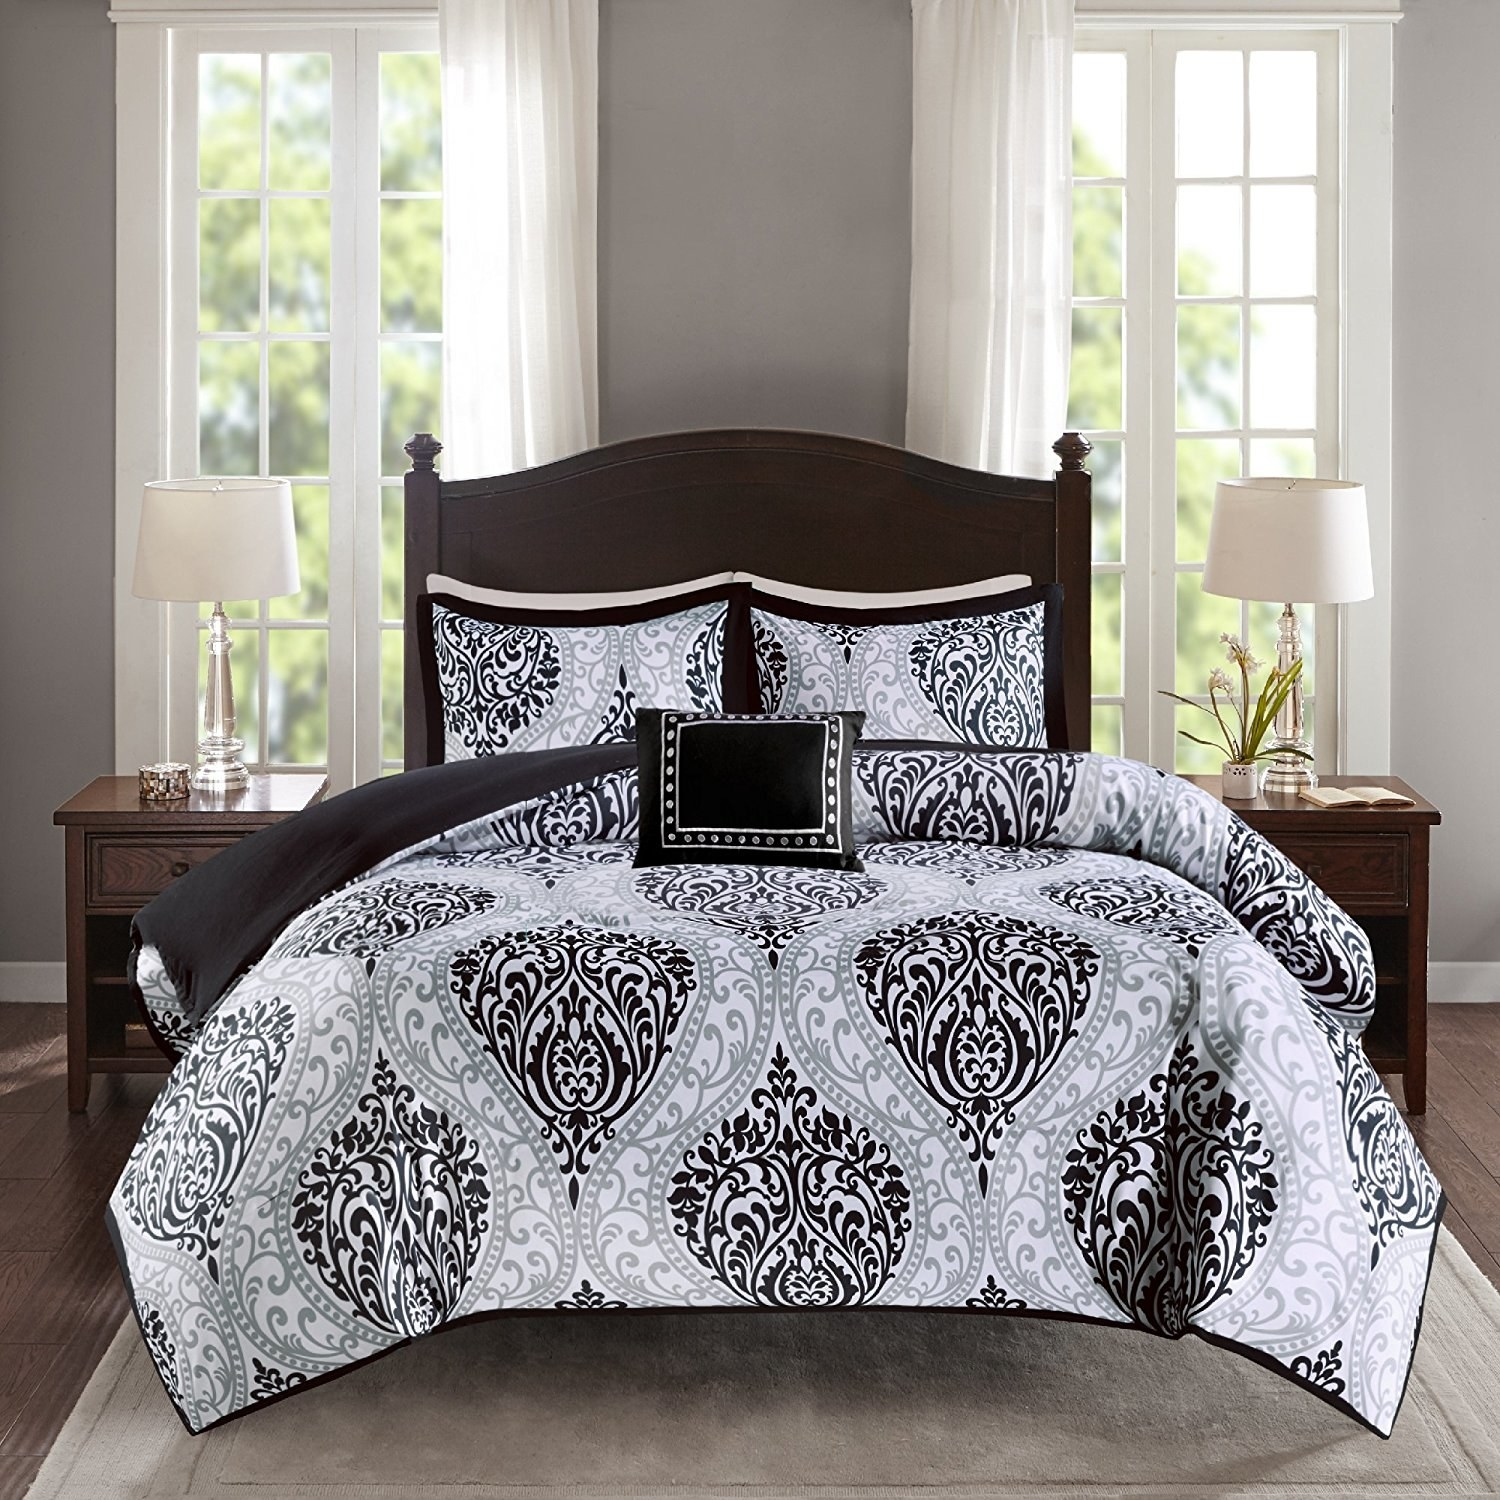 Twin Full Queen King Soft Warm Comforter Set Comfy Cute Floral Comforters Bedding Sets